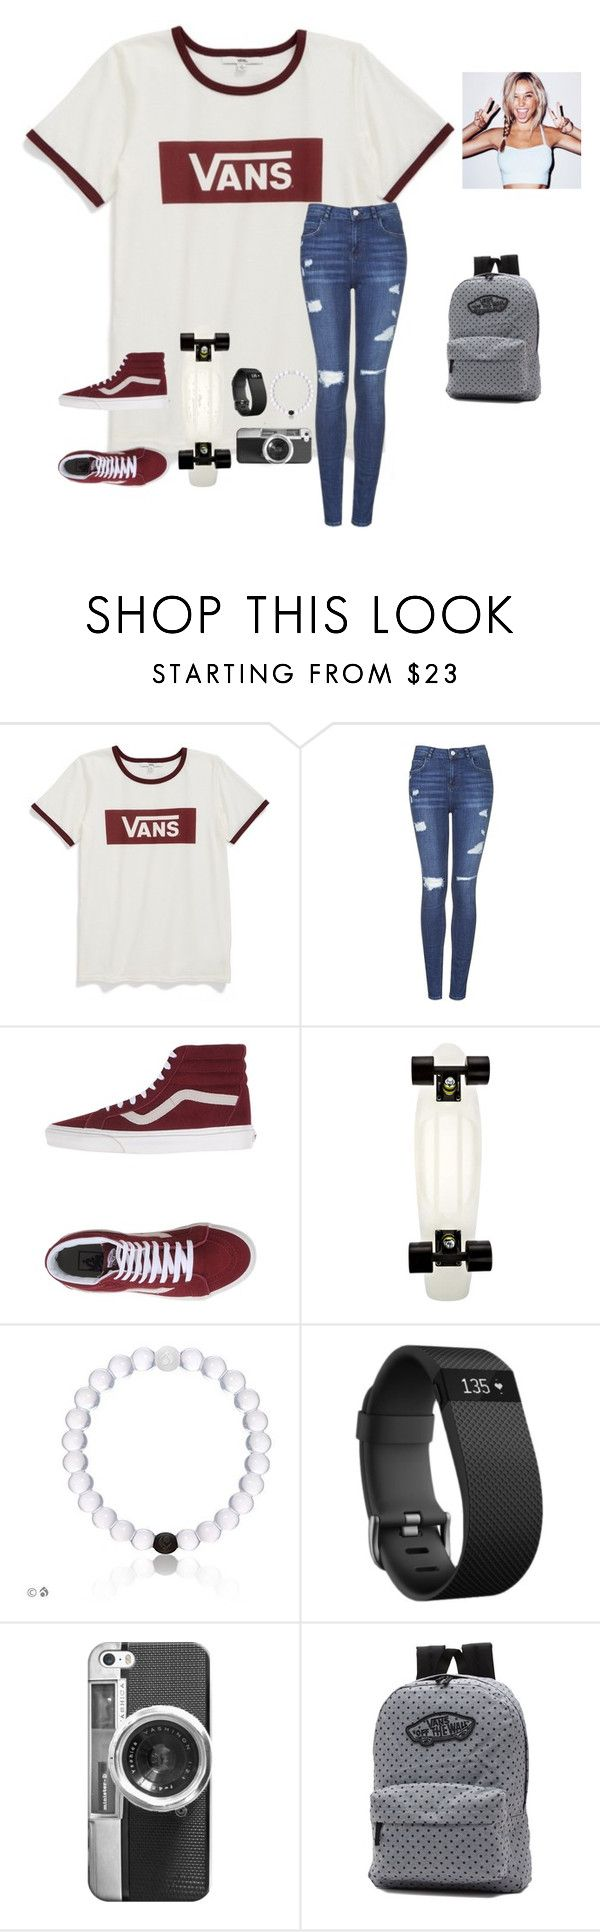 """More skater girl then preppy but I still like this"" by raquate1232 ❤ liked on Polyvore featuring Vans, Topshop, Fitbit and Casetify"